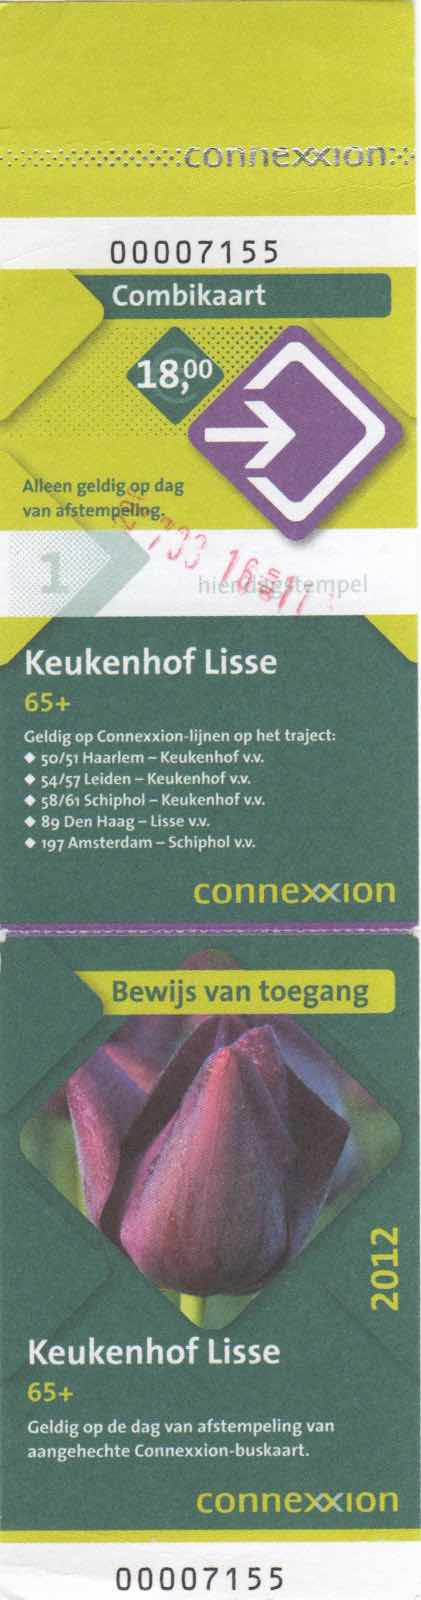 ticket for Connexxion bus and entrance to Keukenhof (2012)